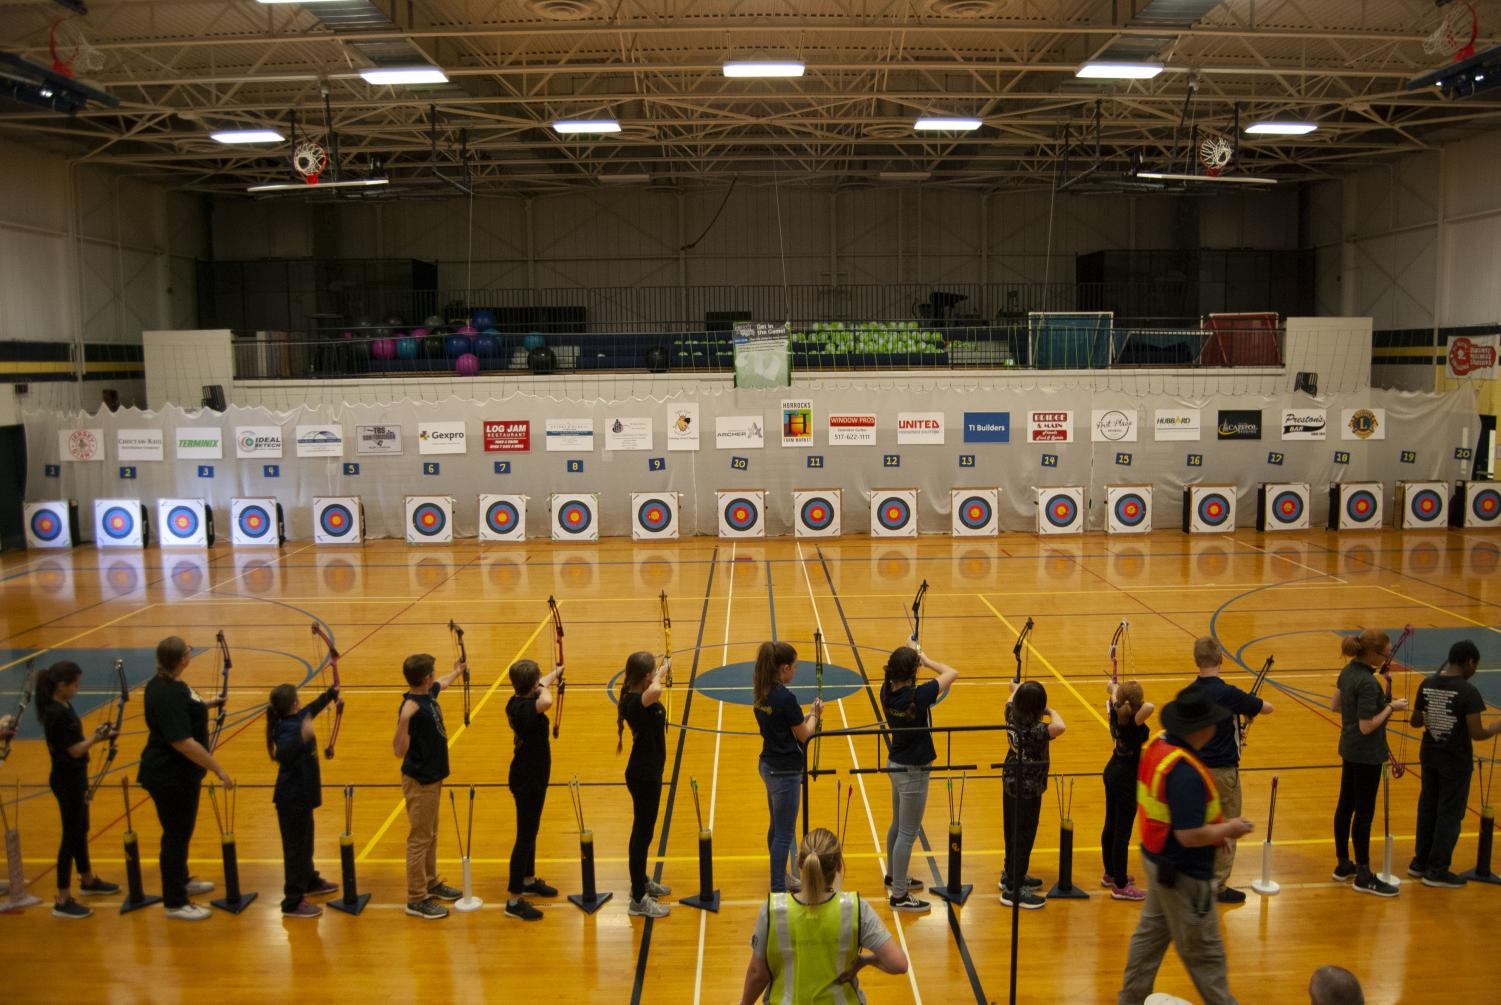 Archers shoot from the 15 meter line at the Grand Ledge Archery Classic. Volunteers helped with setting up the targets, sponsor signs, target numbers, and even put the shooters tape down on the floor.